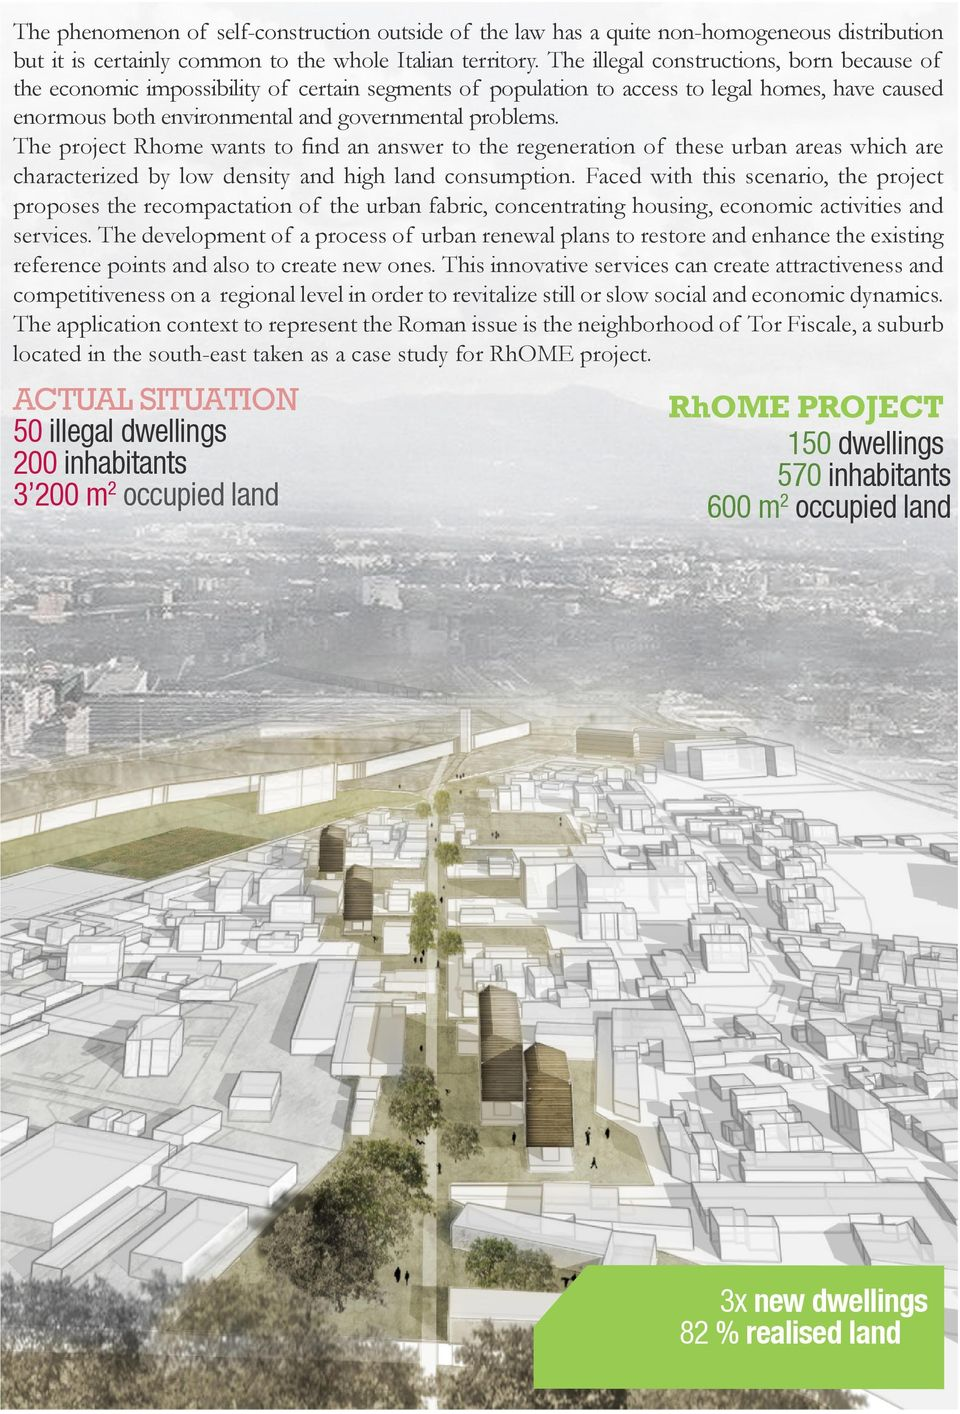 The project Rhome wants to find an answer to the regeneration of these urban areas which are characterized by low density and high land consumption.